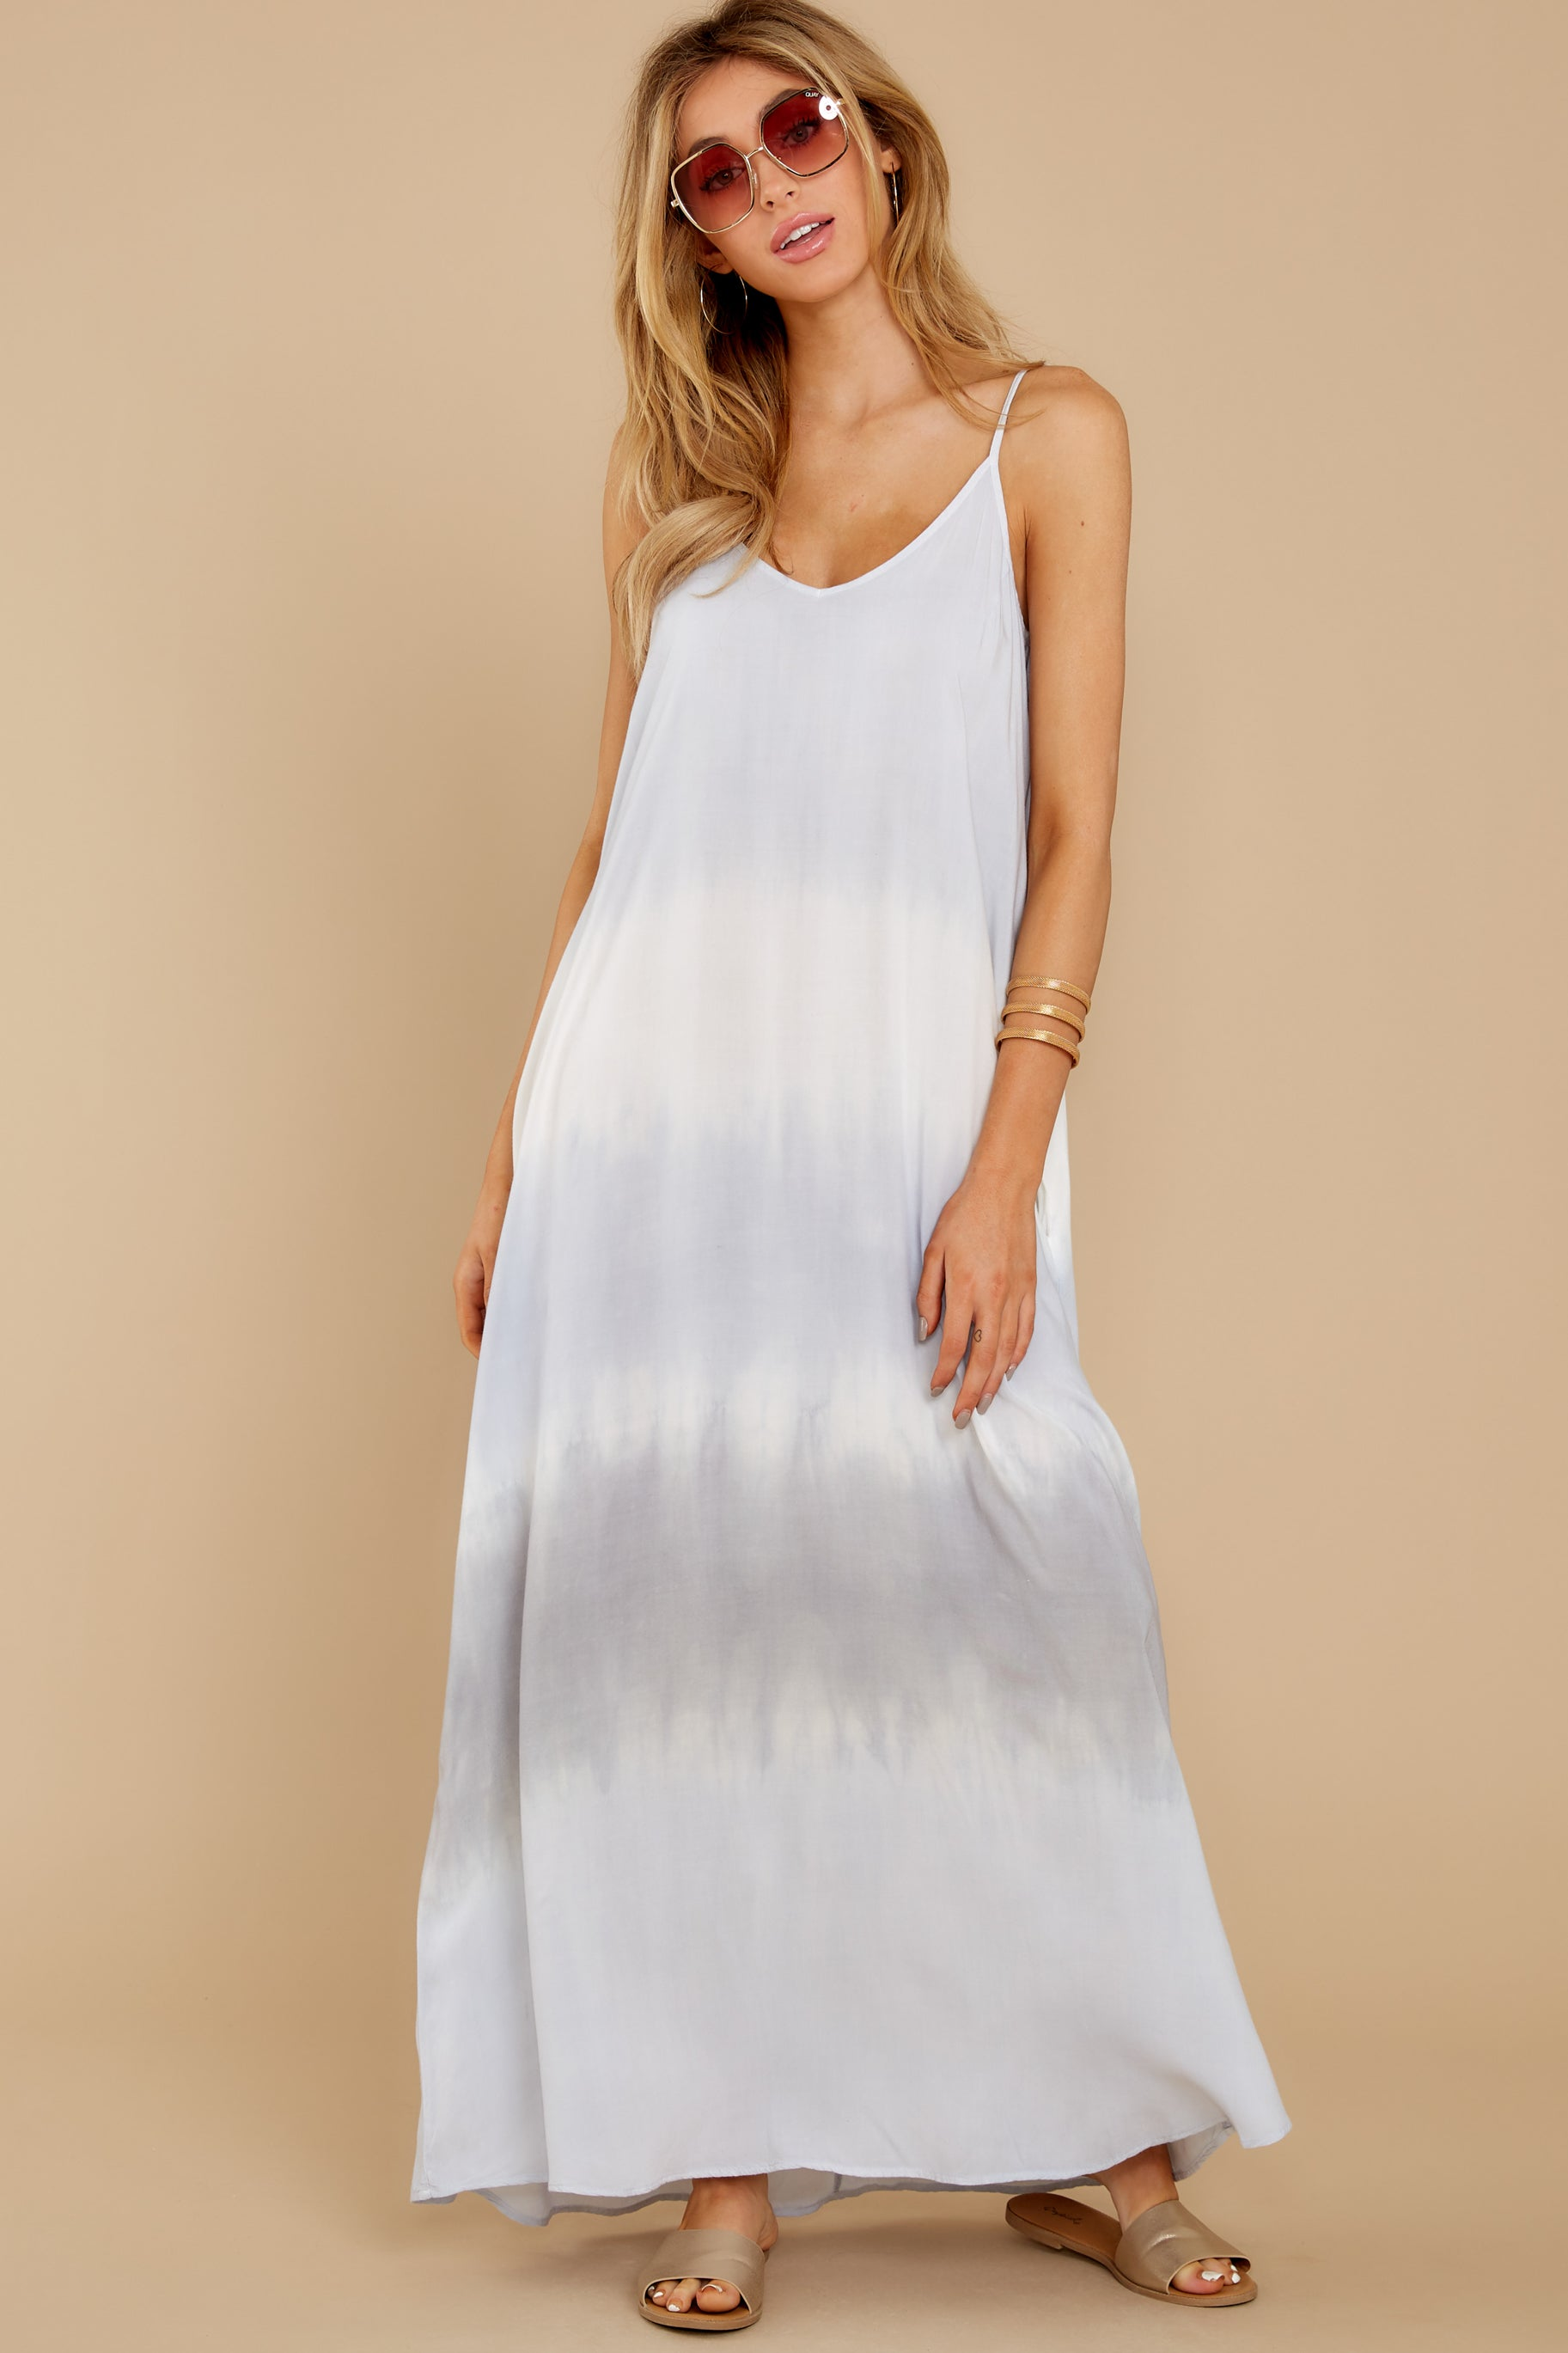 3 All My Love Light Blue Multi Maxi Dress at reddress.com